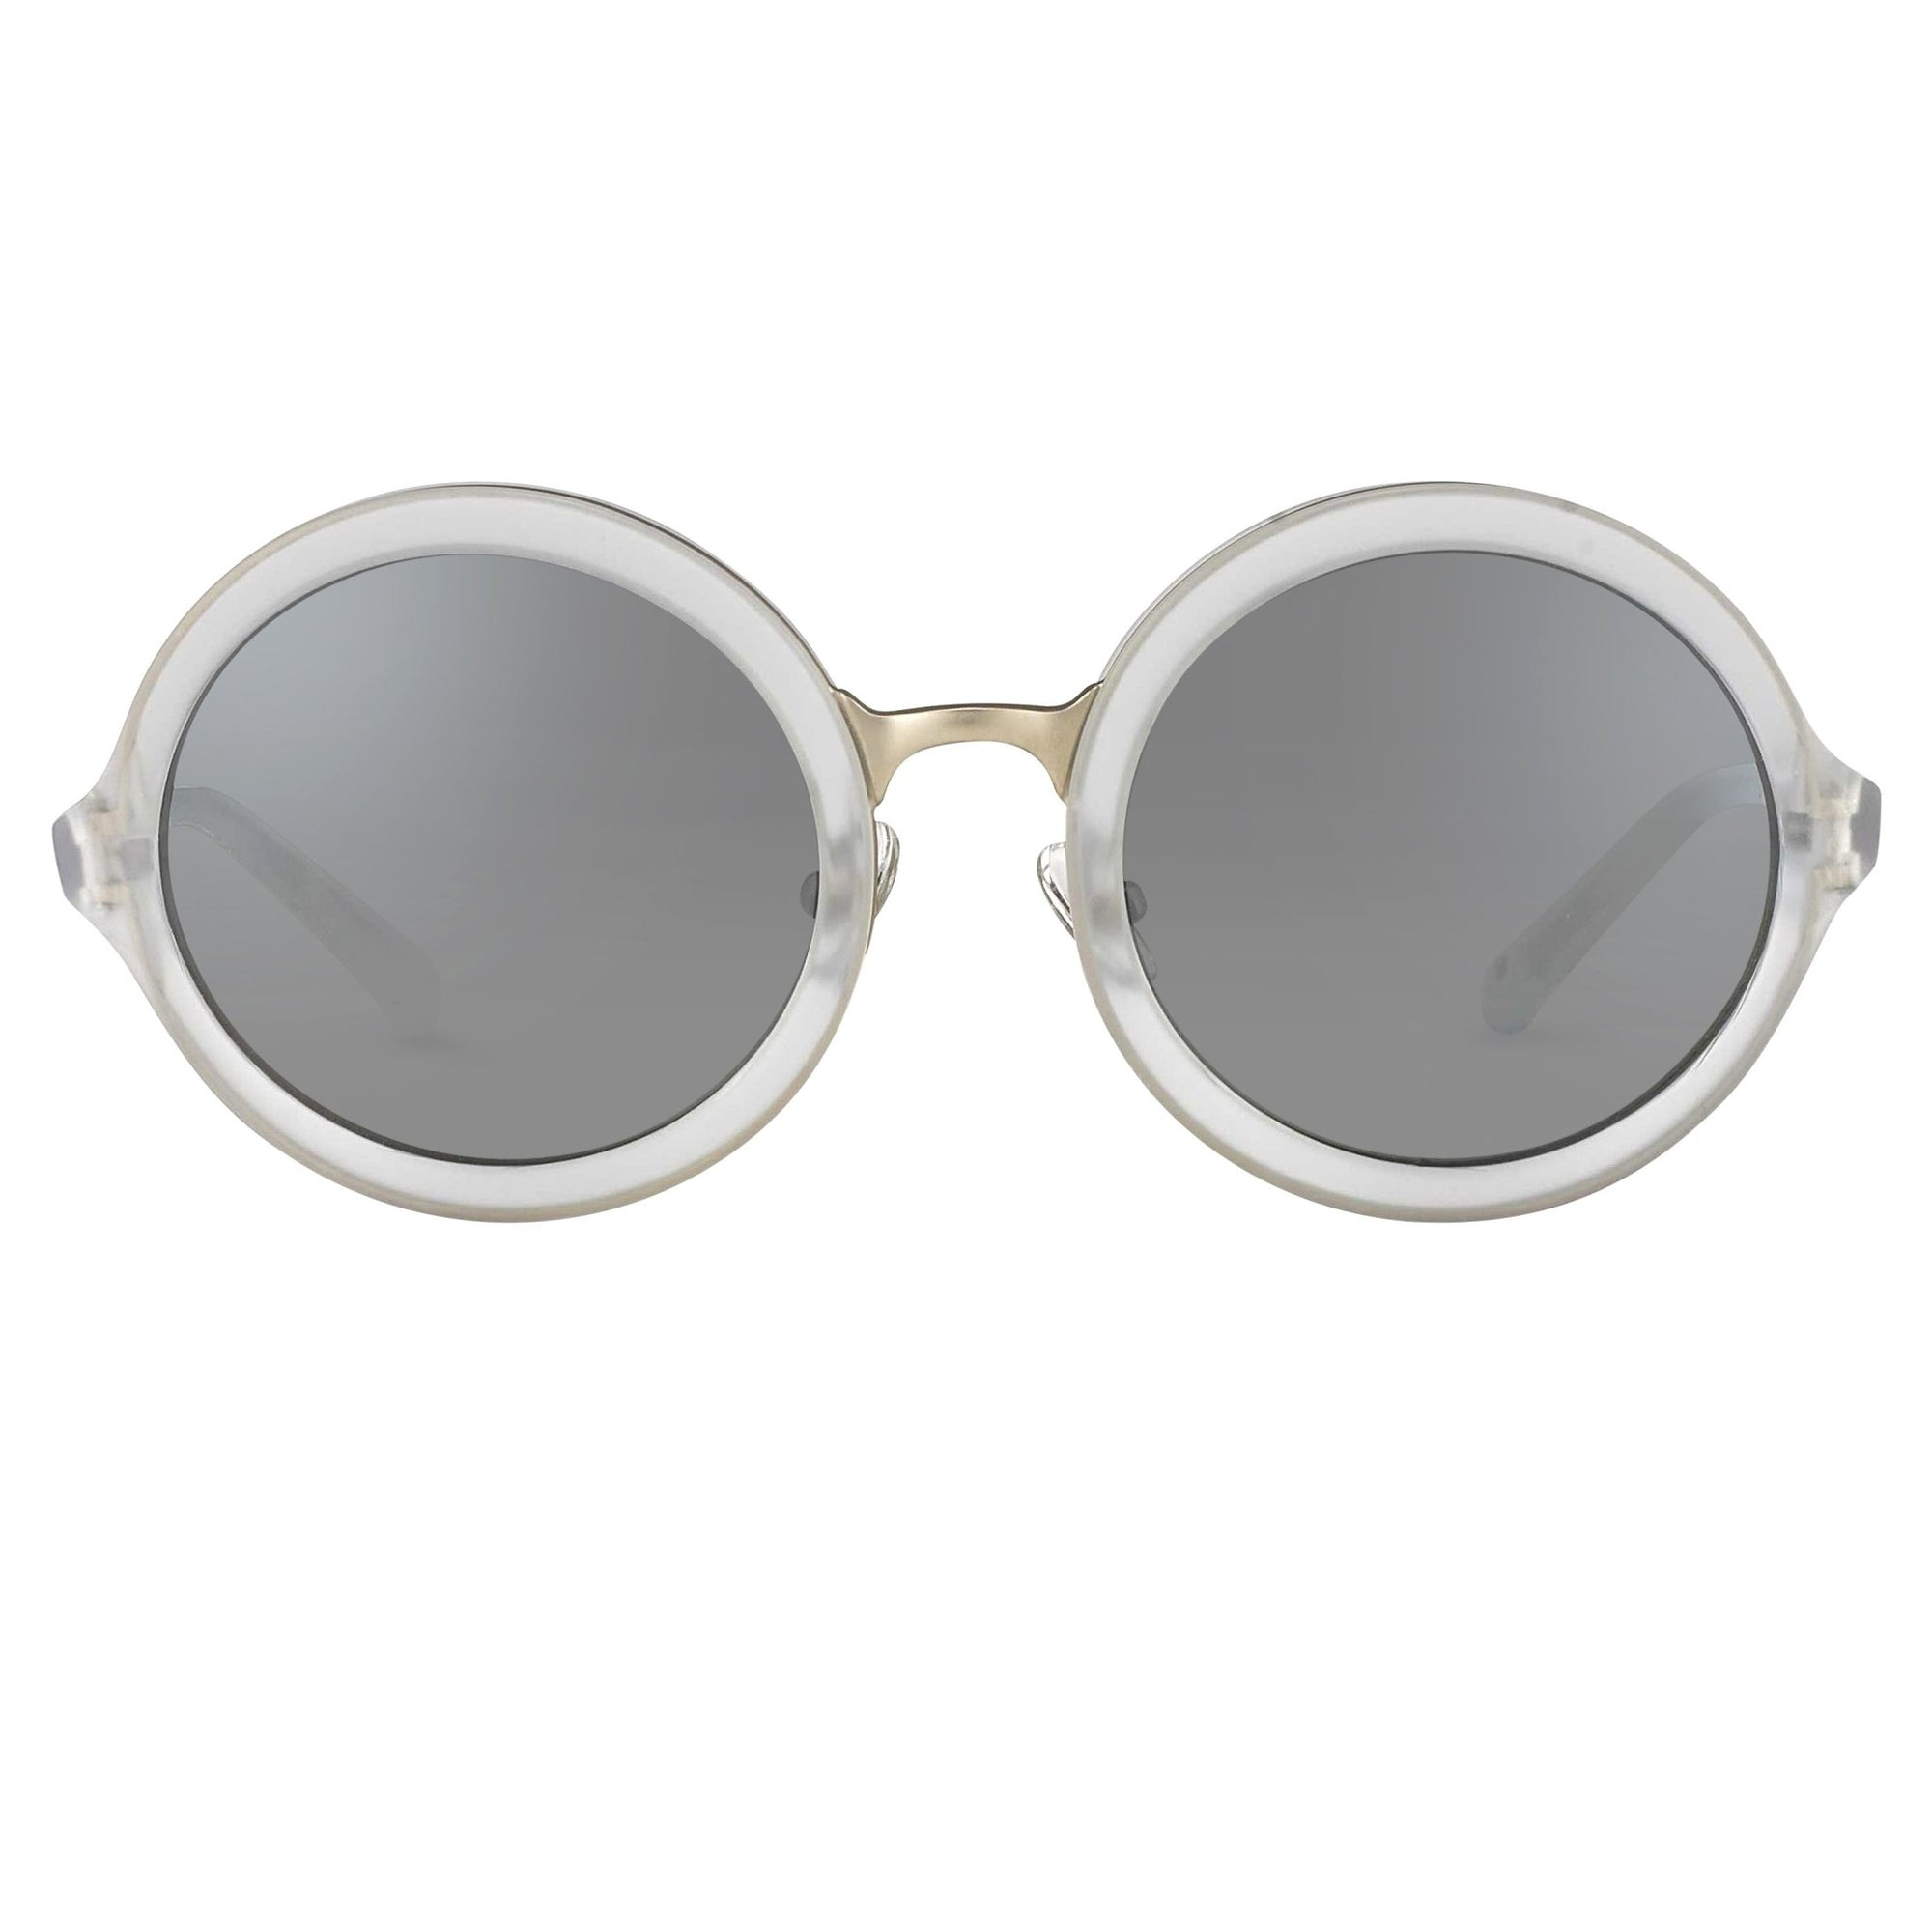 Phillip Lim Sunglasses with Round Clear Brushed Silver and Smoke Mirror Lenses Category 3 - PL11C23SUN - Watches & Crystals